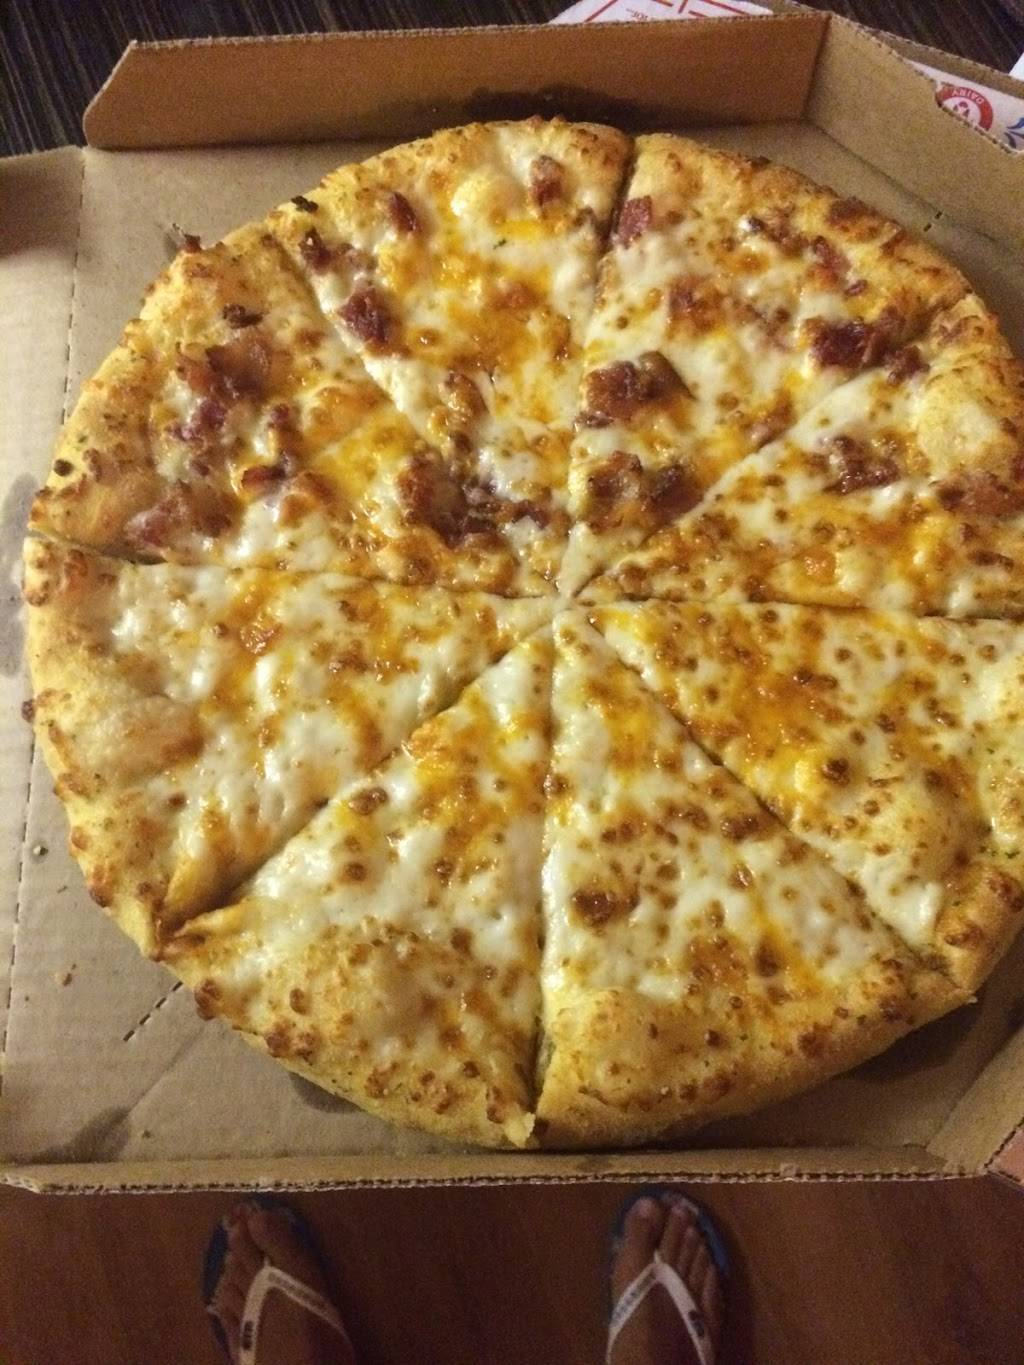 Dominos Pizza | meal delivery | 901 S South La Brea Ave, Inglewood, CA 90301, USA | 3106771900 OR +1 310-677-1900